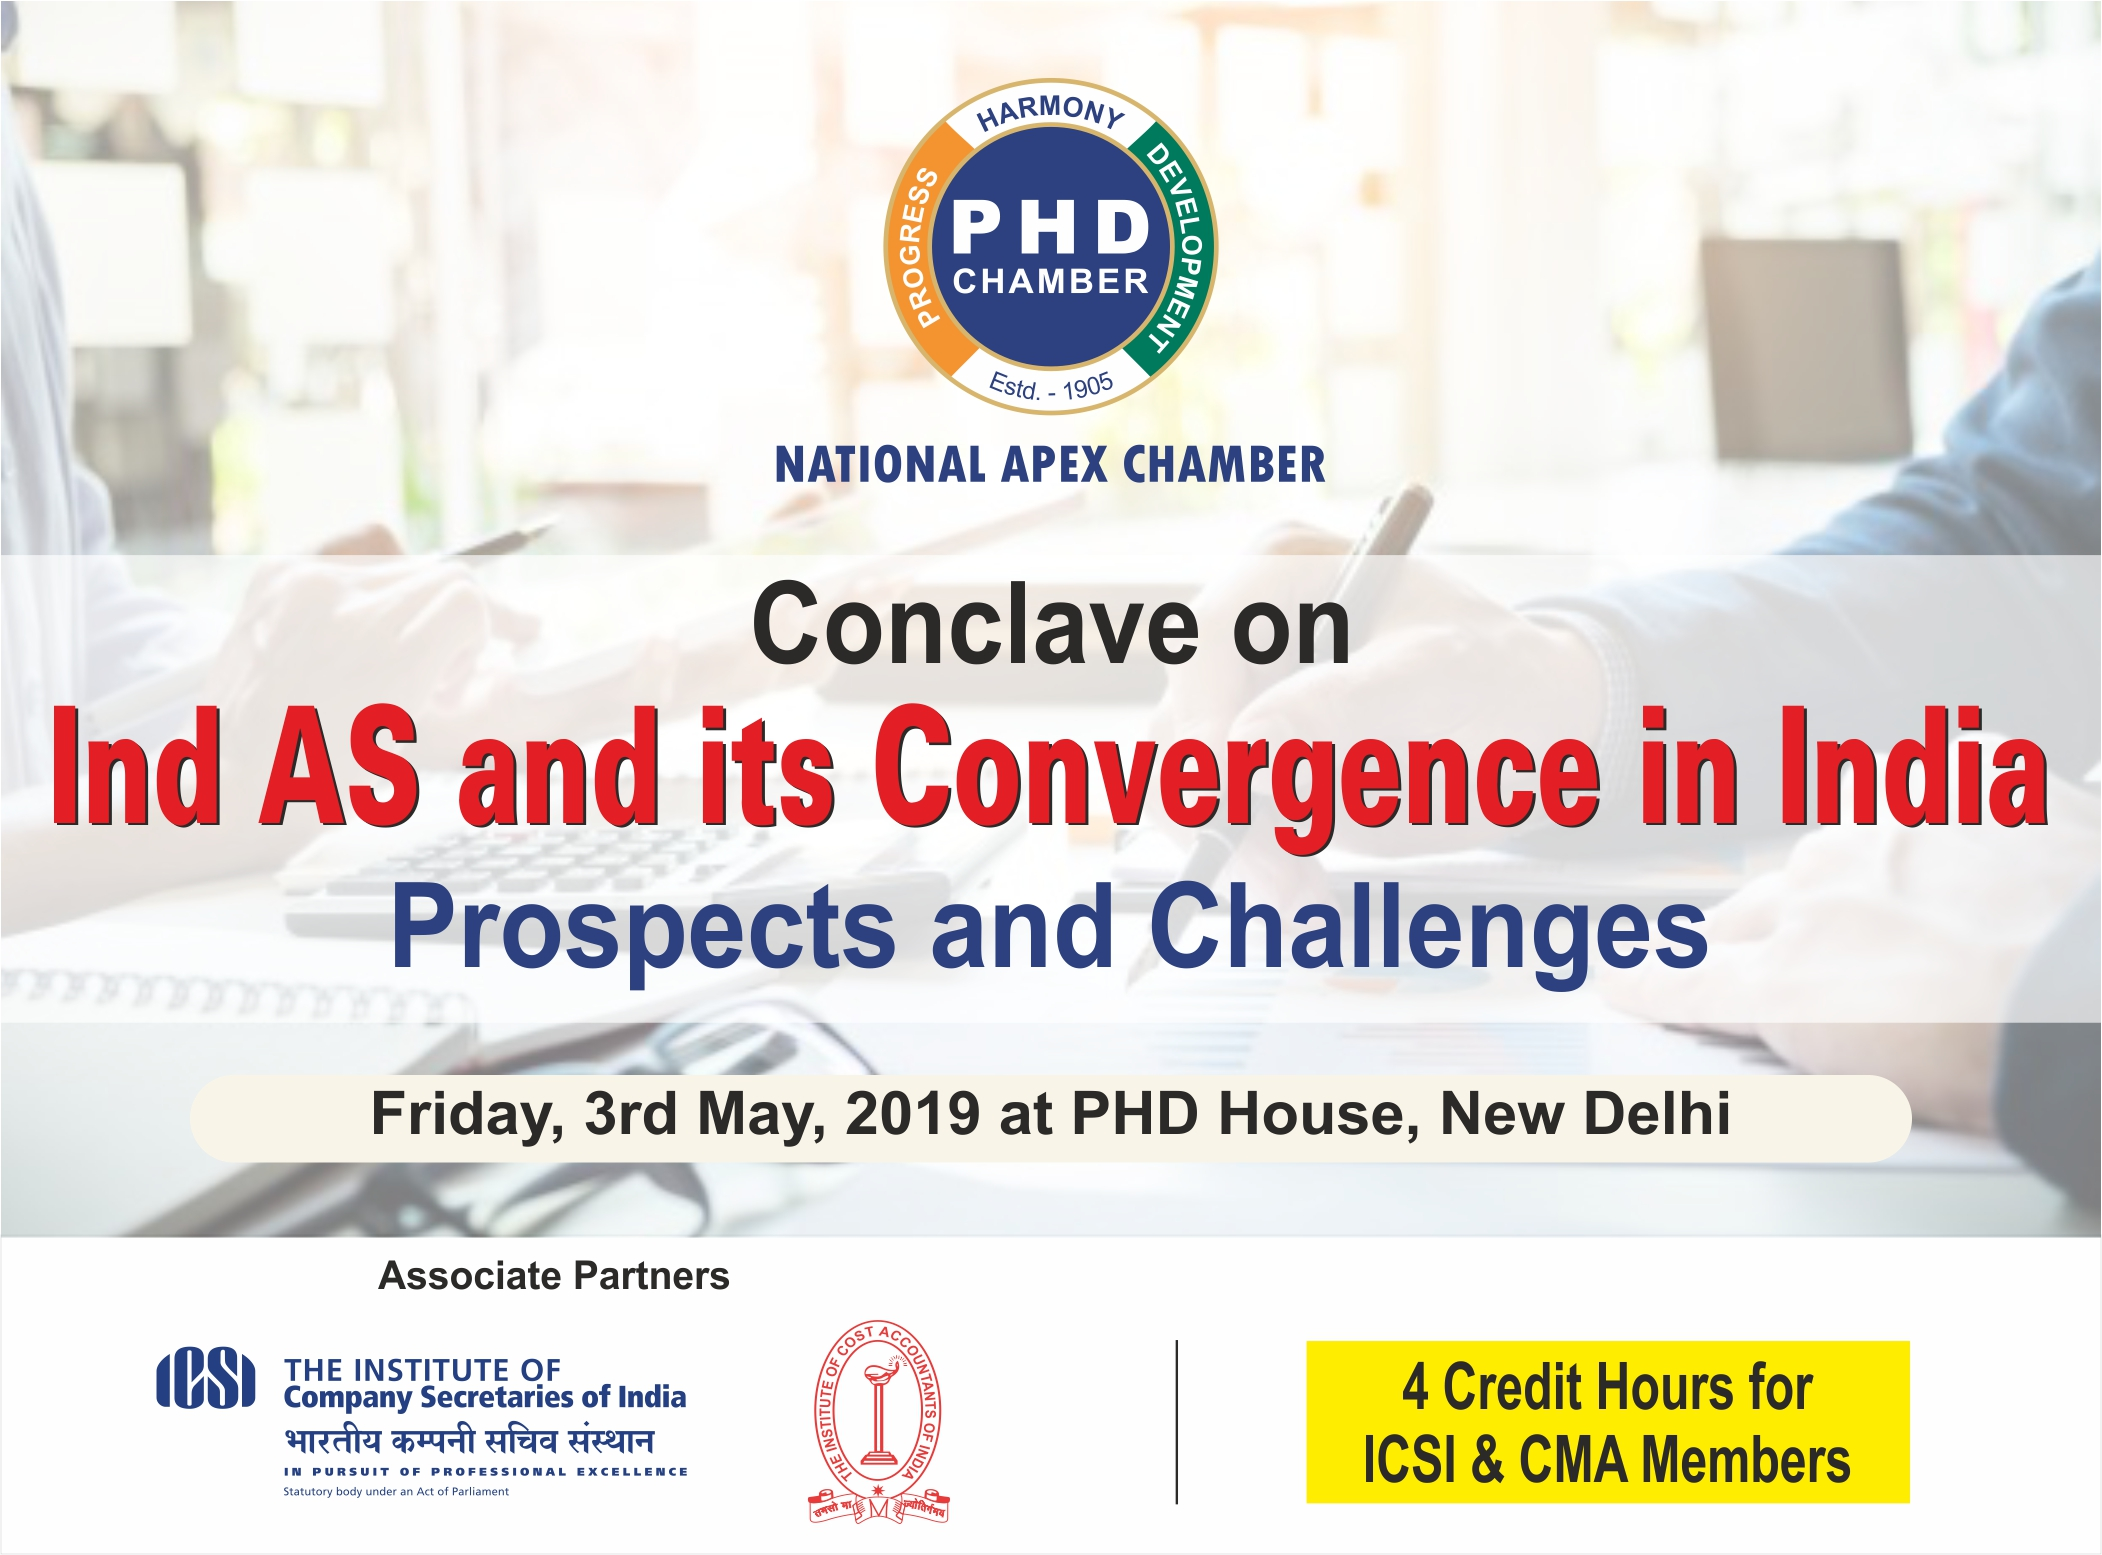 Conclave on Ind AS and its Convergence in India- Prospects and Challenges